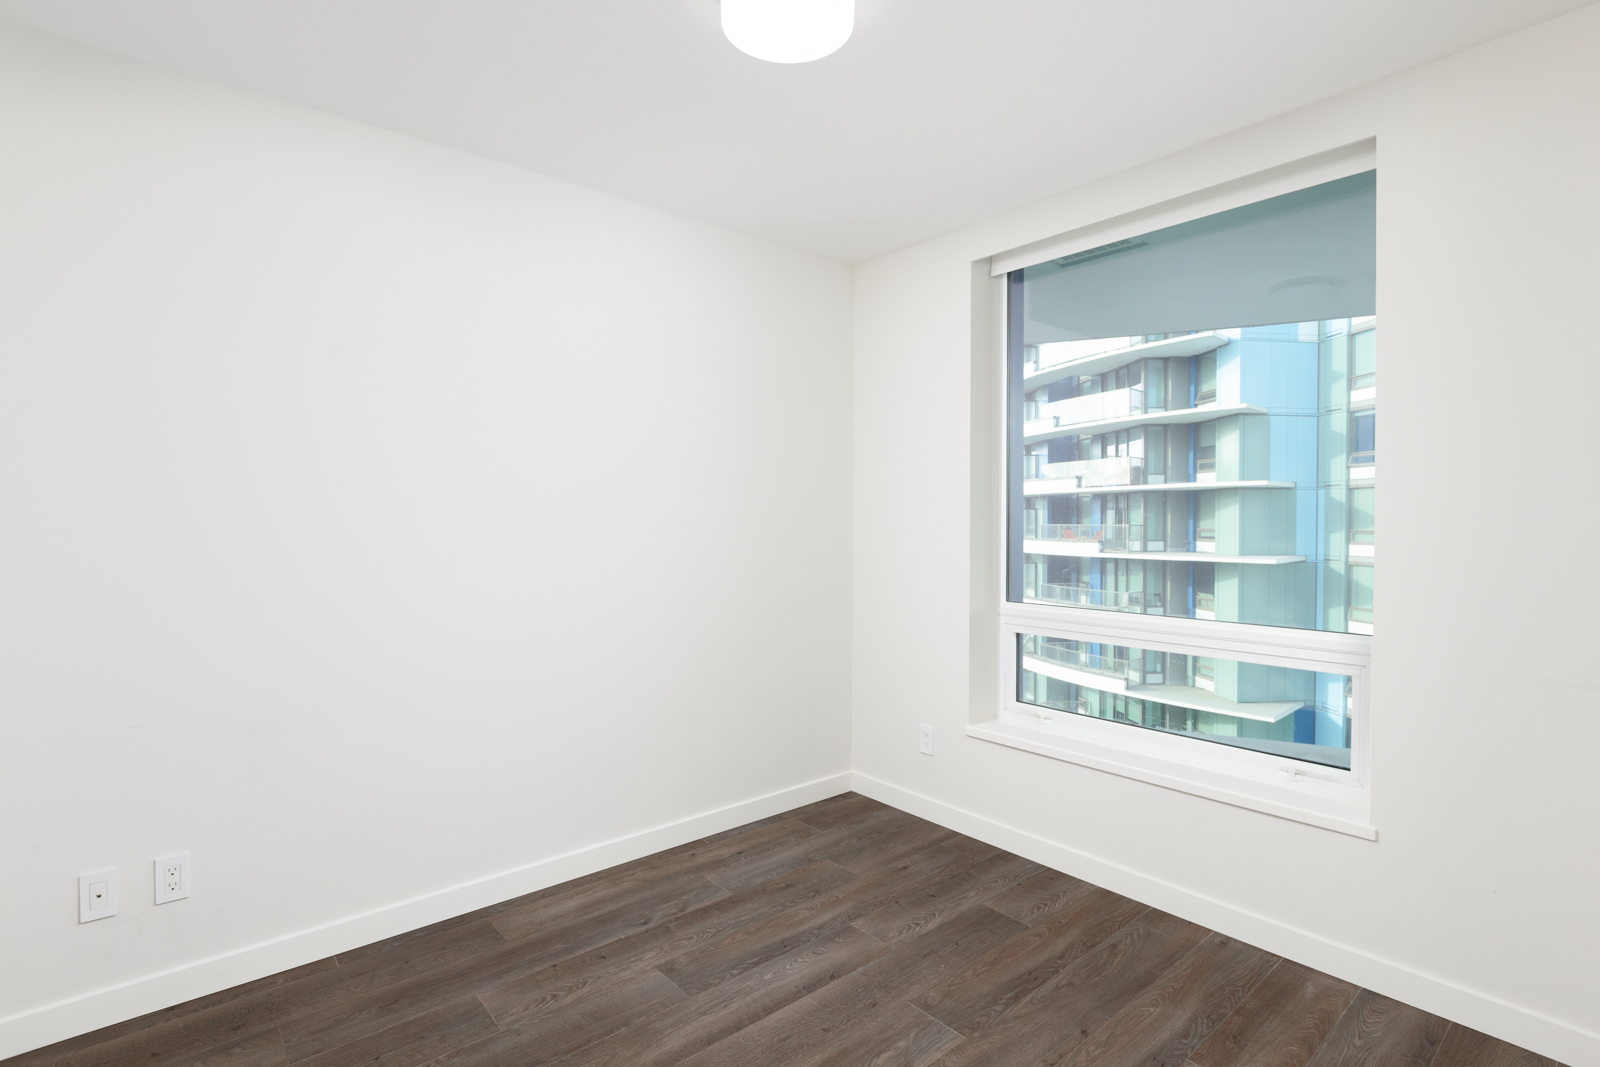 Bedroom with dark hardwood flooring inside luxury Downtown Vancouver condo.